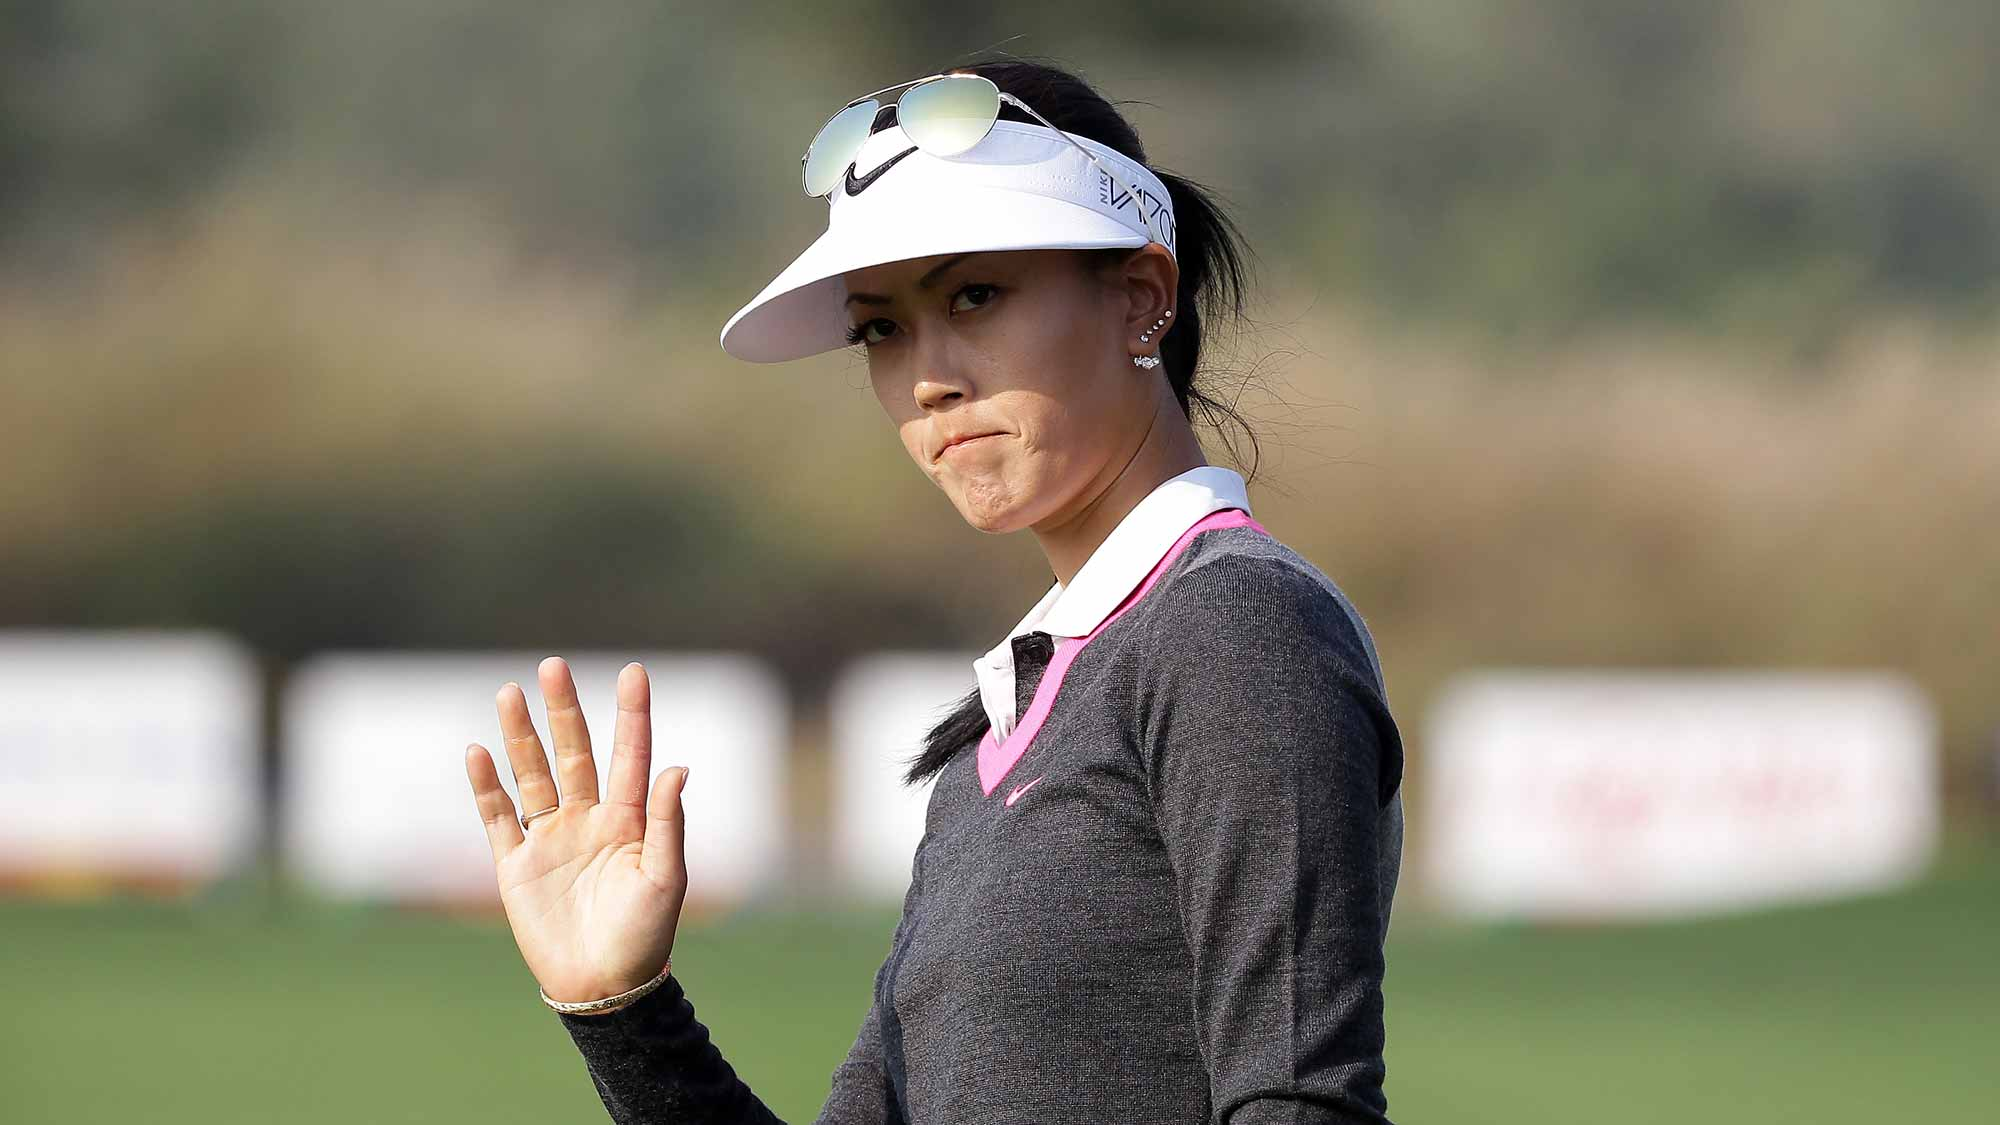 Michelle Wie of United States reacts after a putt on the 18th green during the first round of LPGA KEB Hana Bank Championship at Sky 72 Golf Club Ocean Course